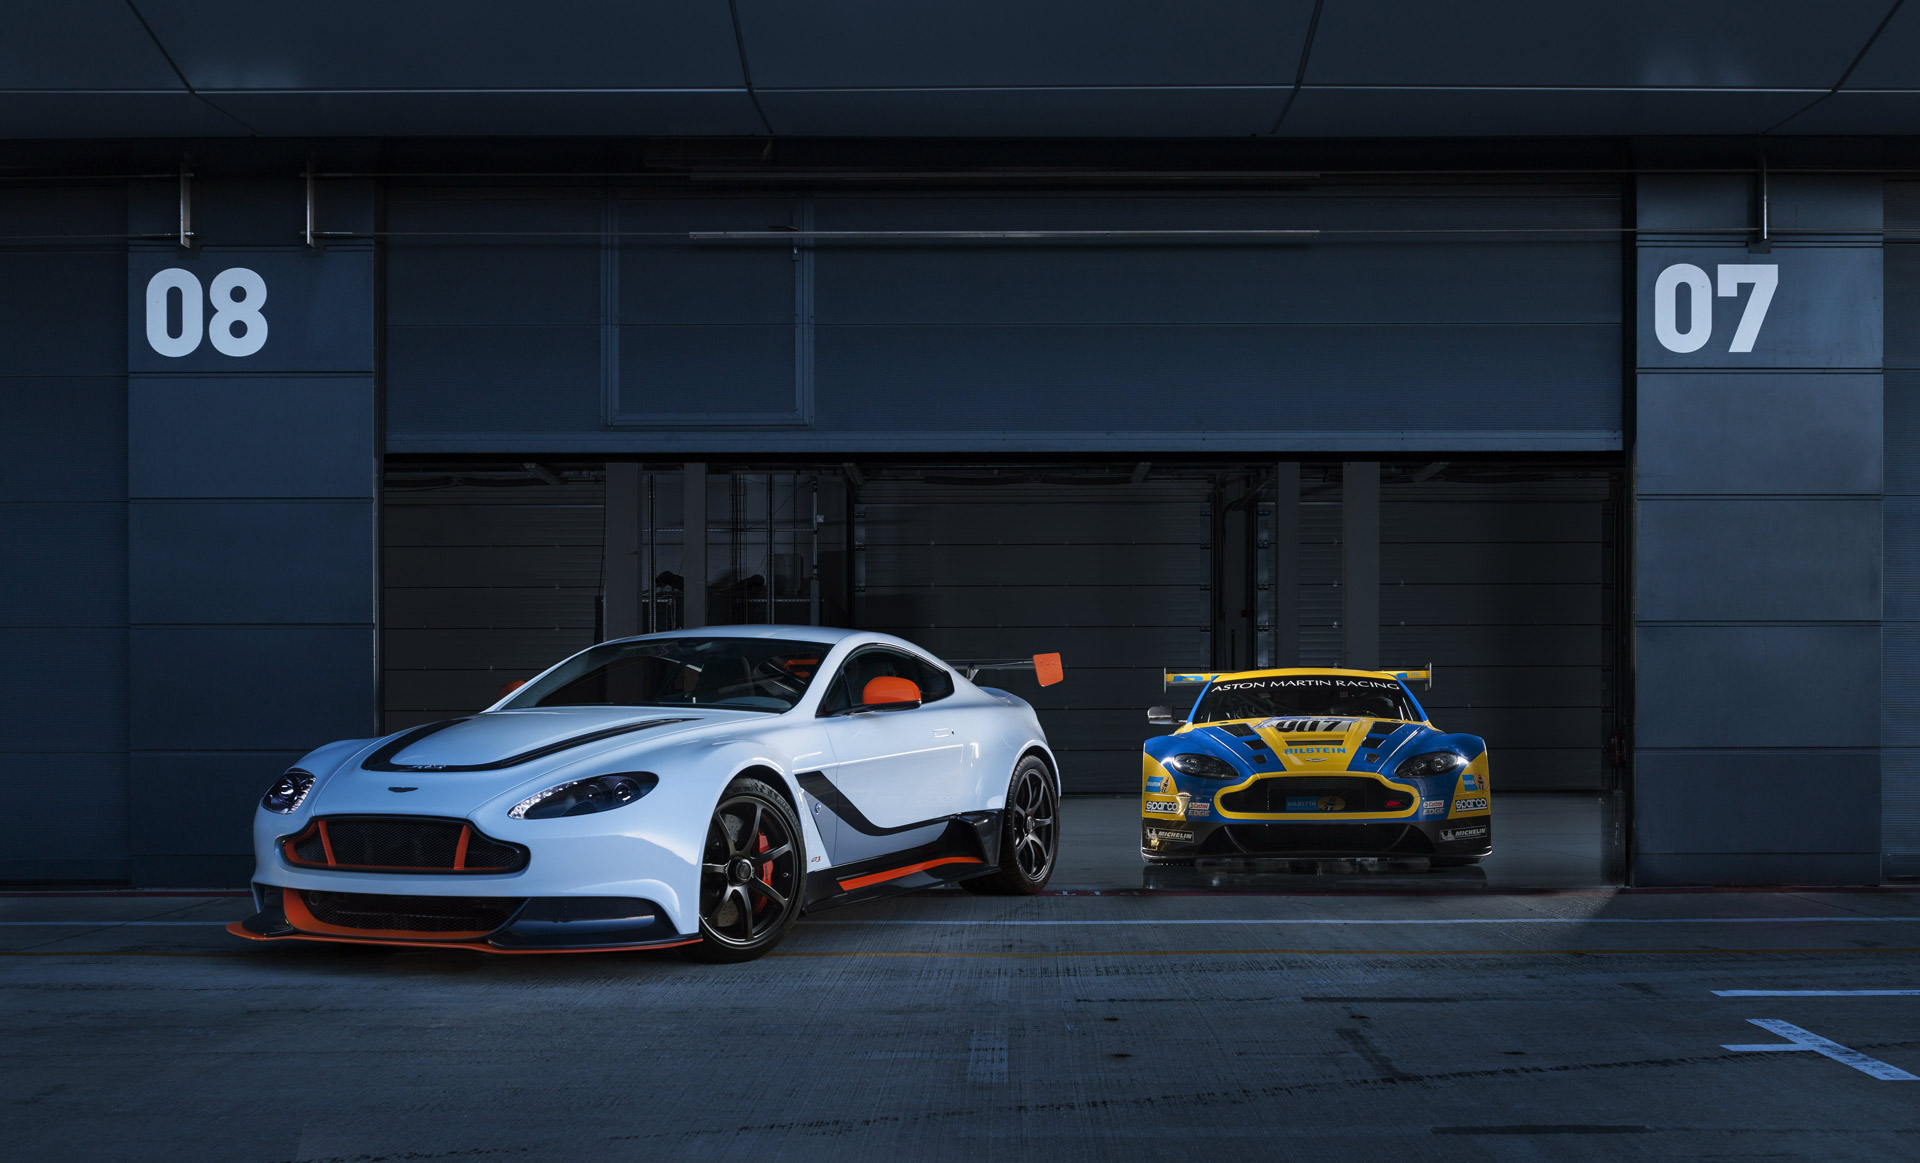 Aston Martin Vantage Gt3 Road Car Revealed Not Coming To U S